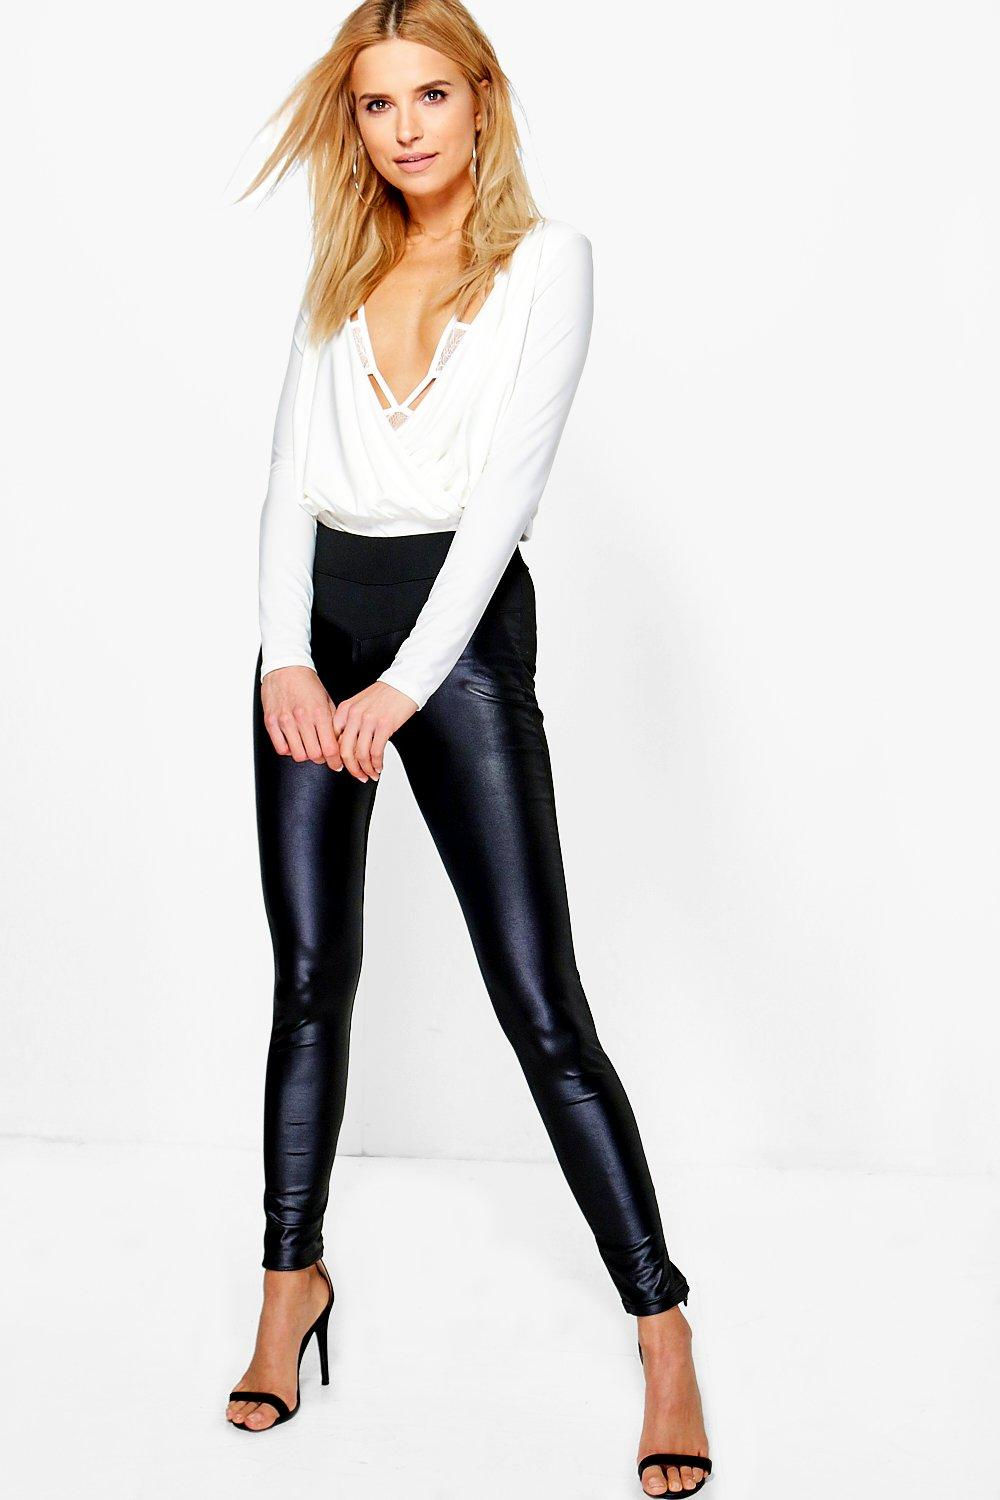 Arizona Leather Look Front Leggings black